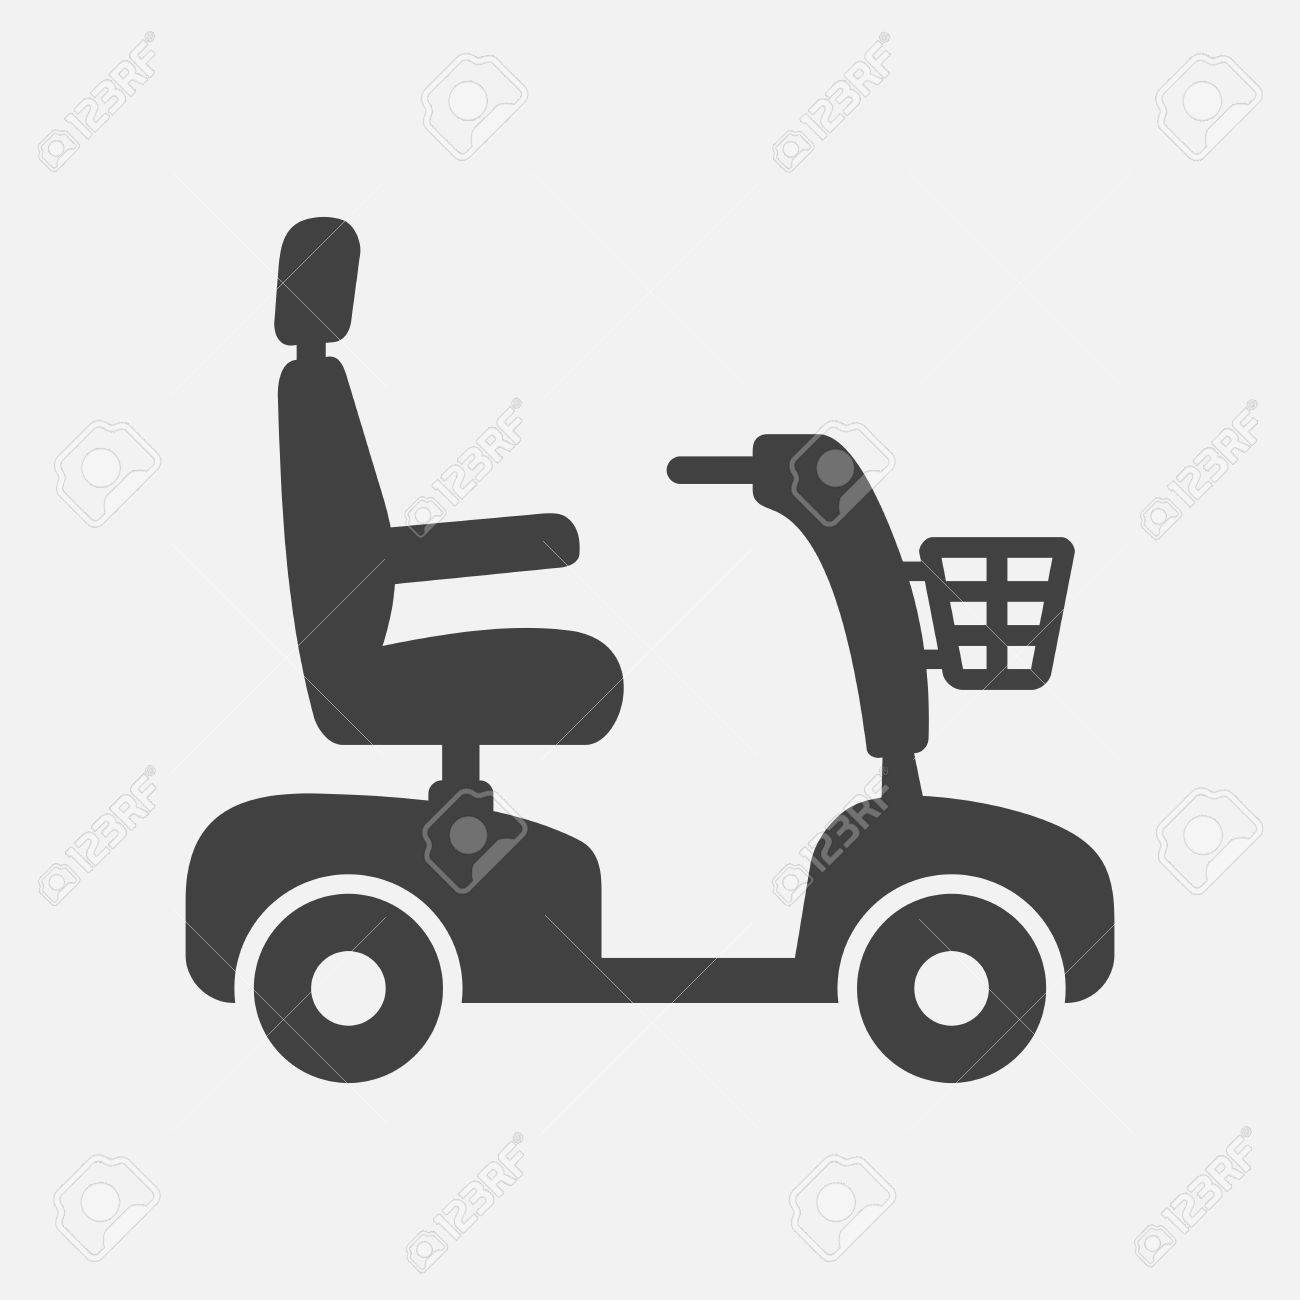 Mobility scooter icon.